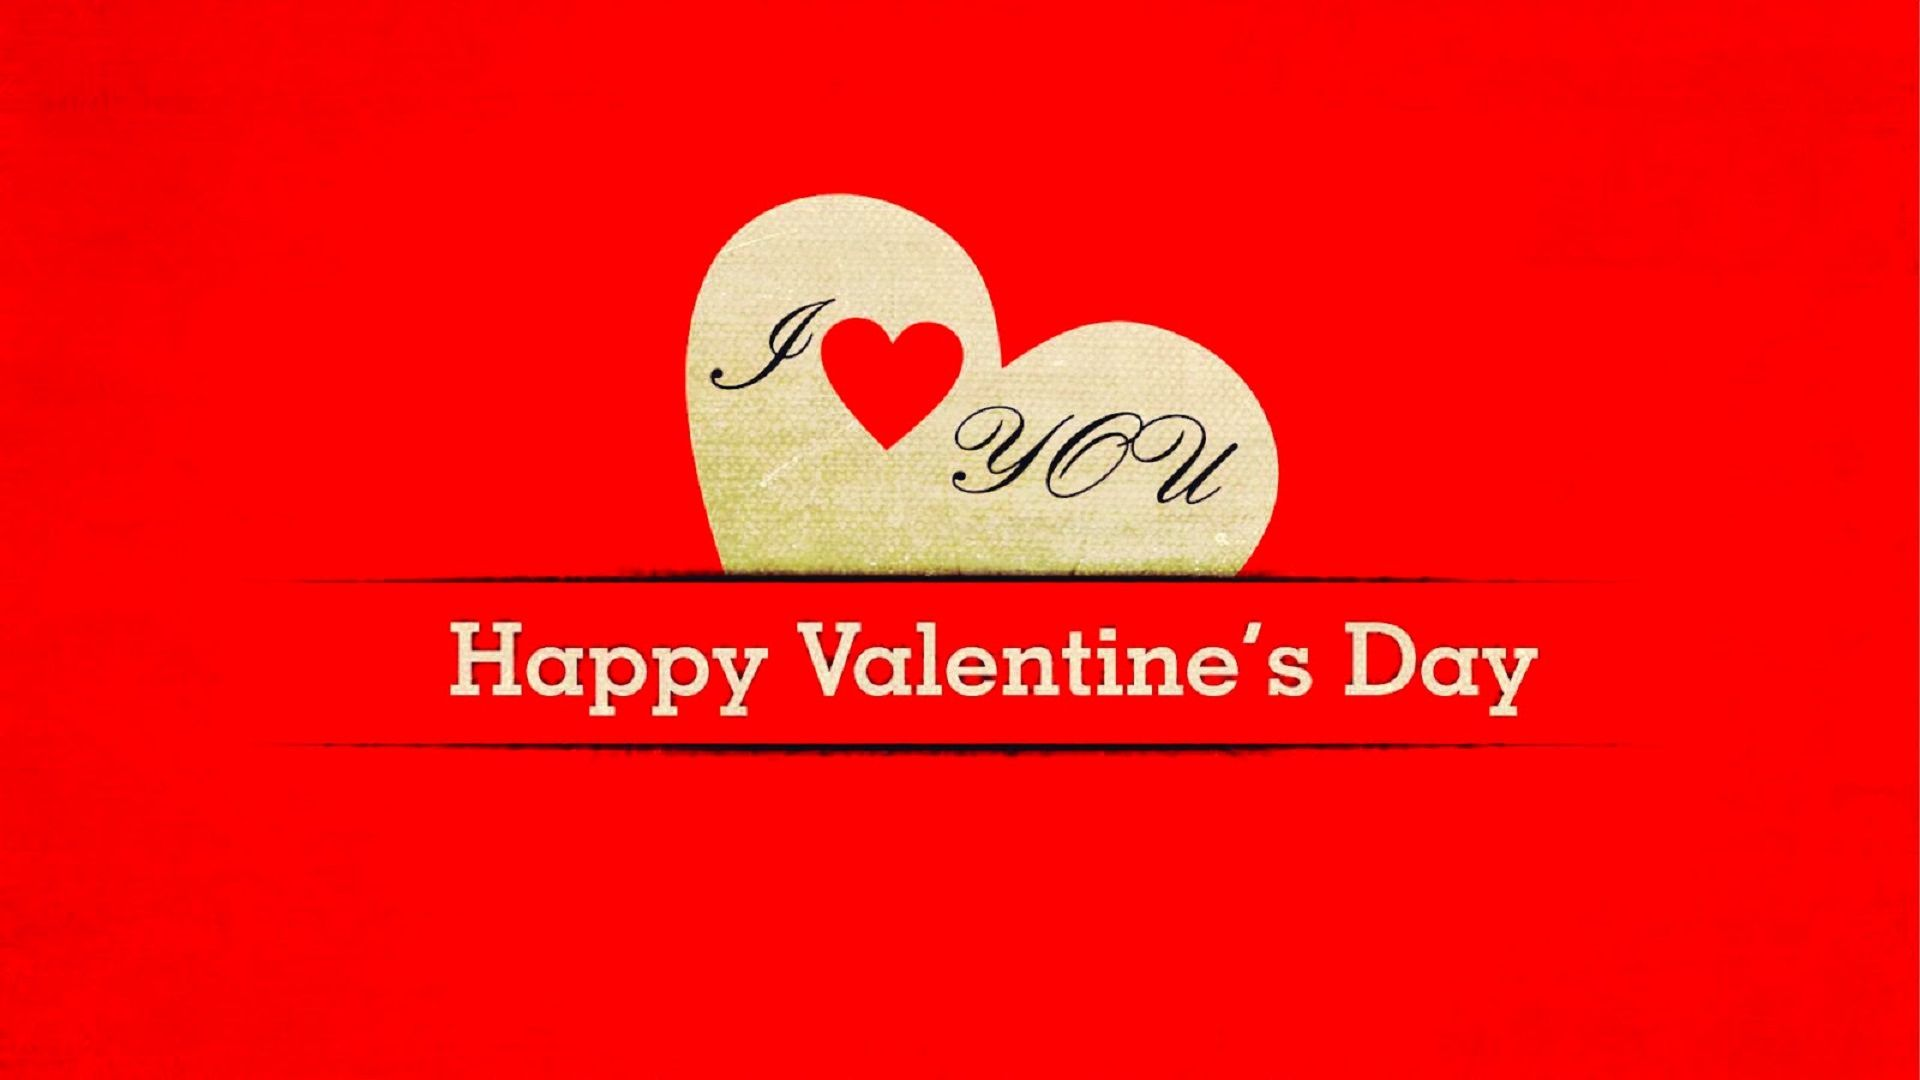 valentines day messages for girlfriend and wife valentine messages valentine picture and messages